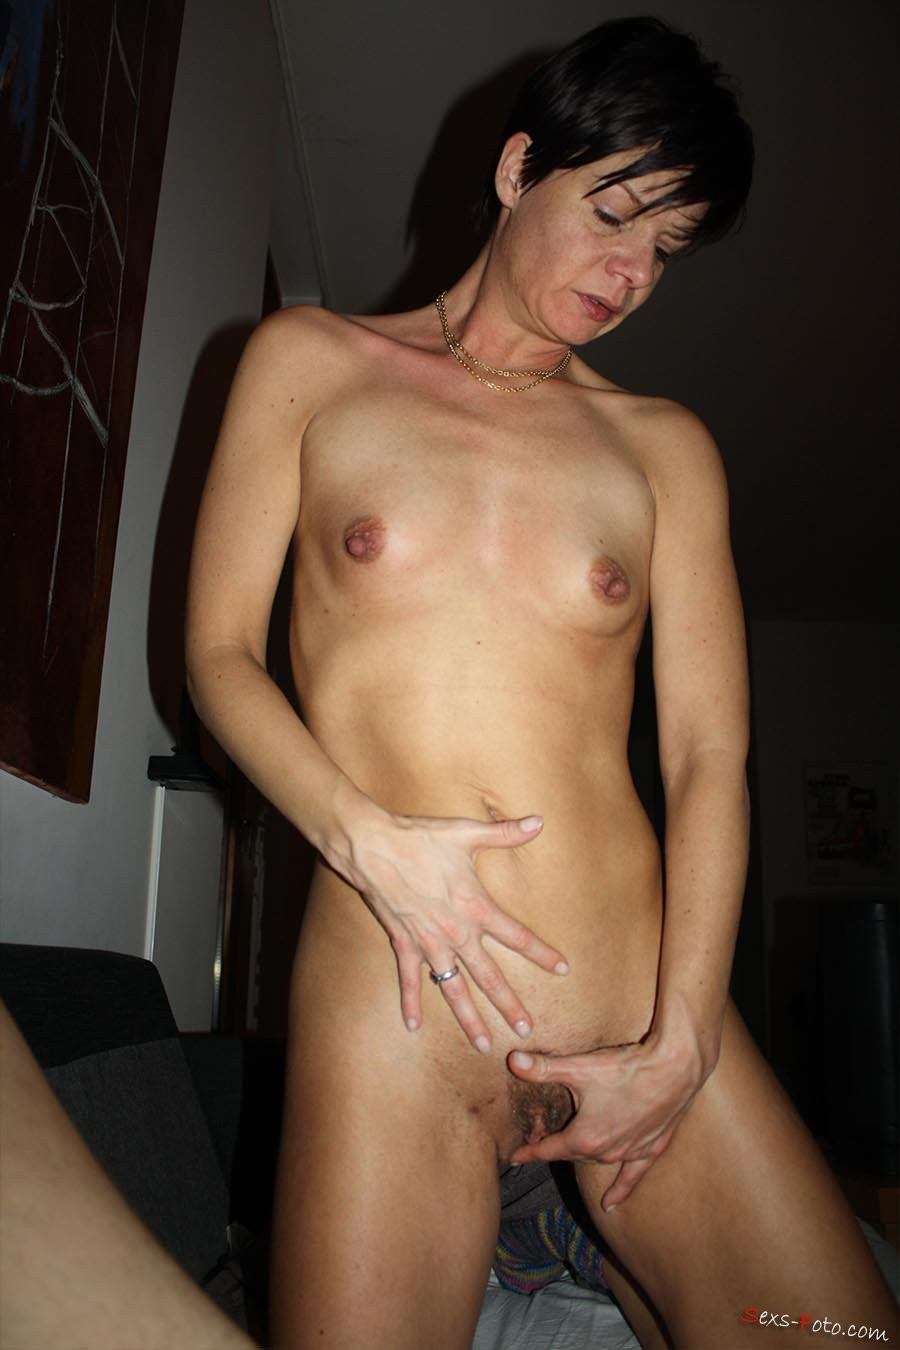 sex mom interracial – Other